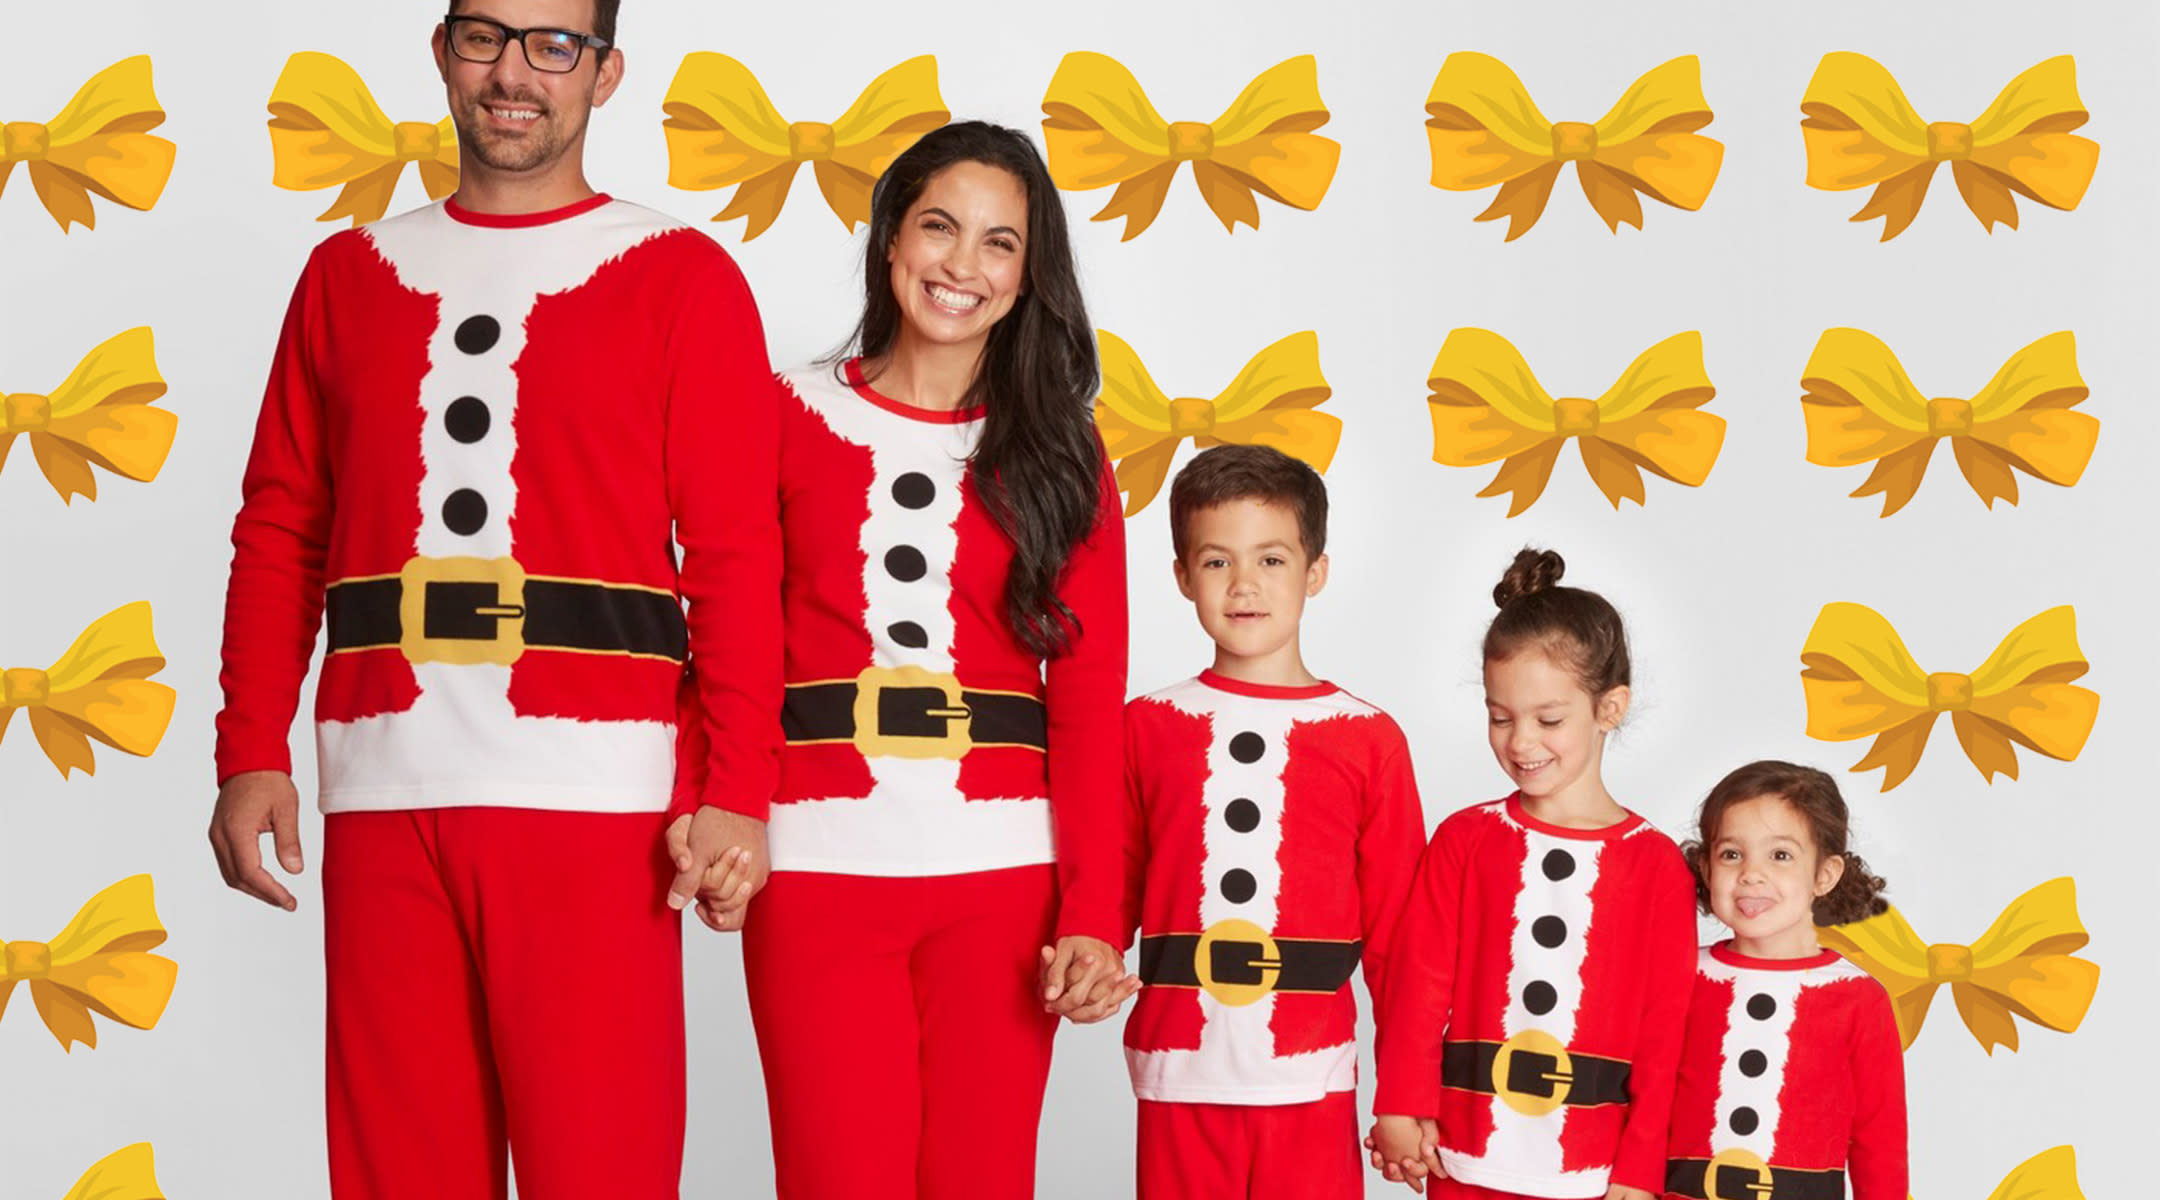 bc34cc86f0 Target Has a Collection of Holiday Matching PJs for the Family